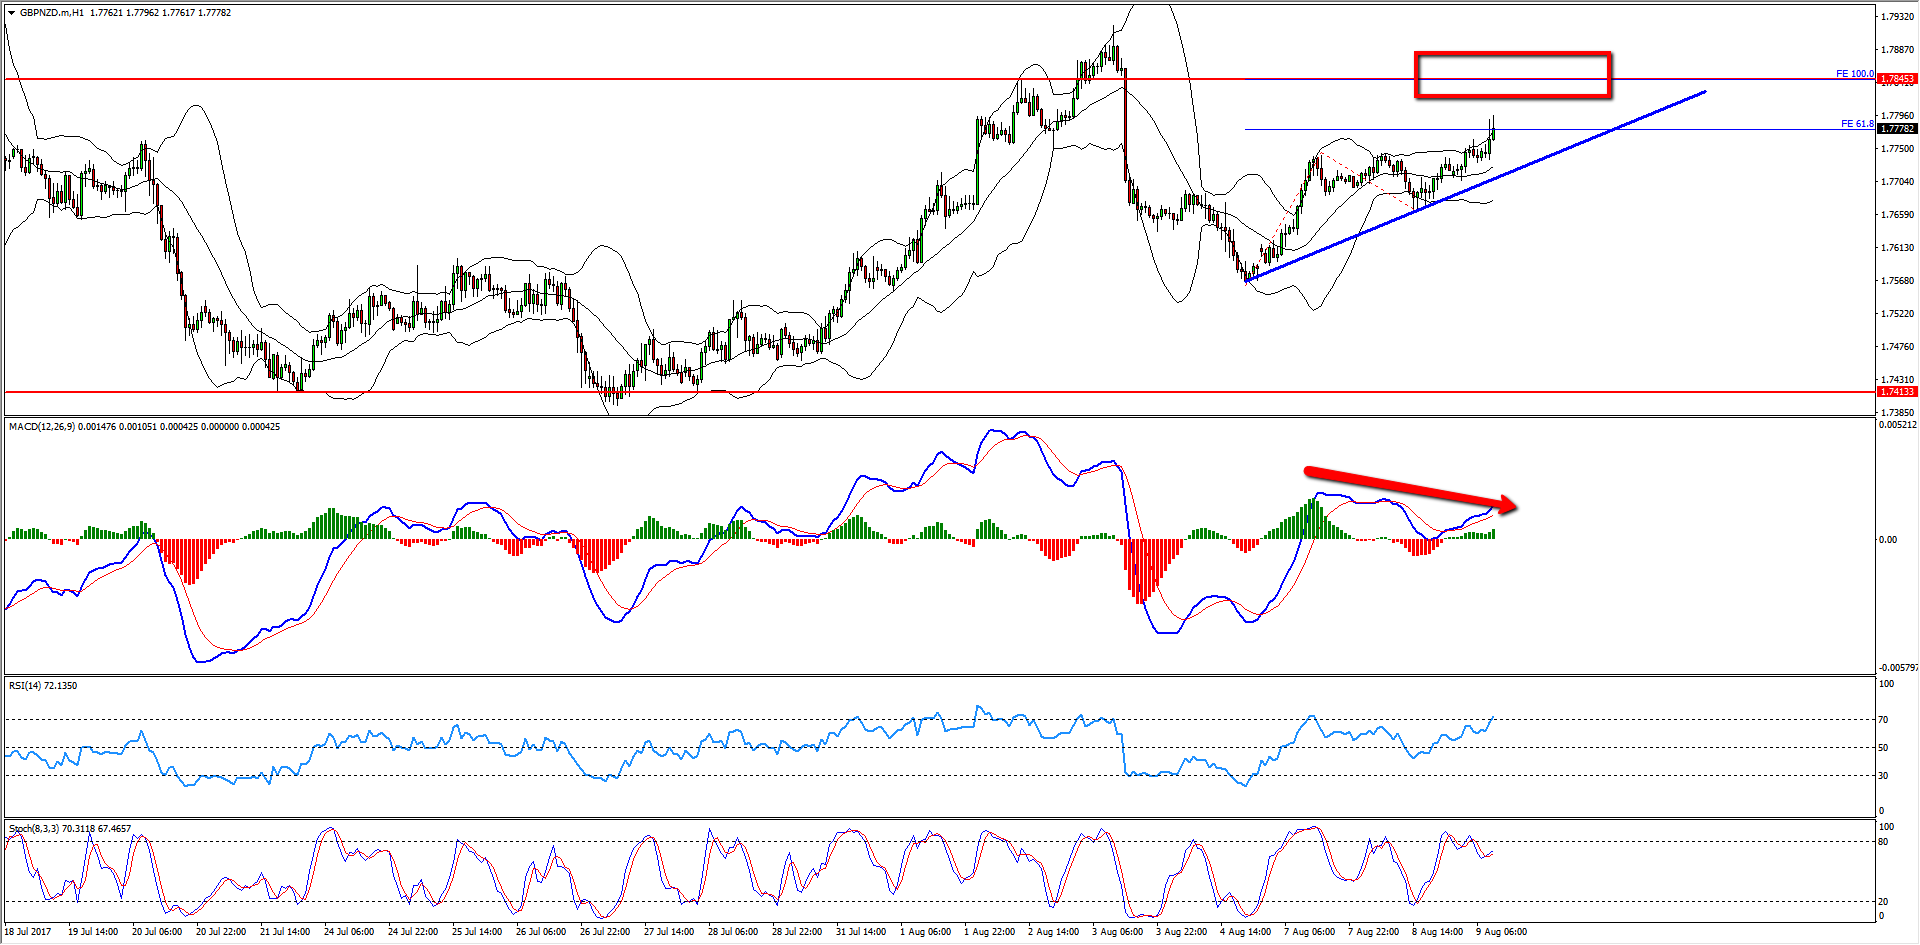 GBPNZD Short Term Sell Opportunity forming